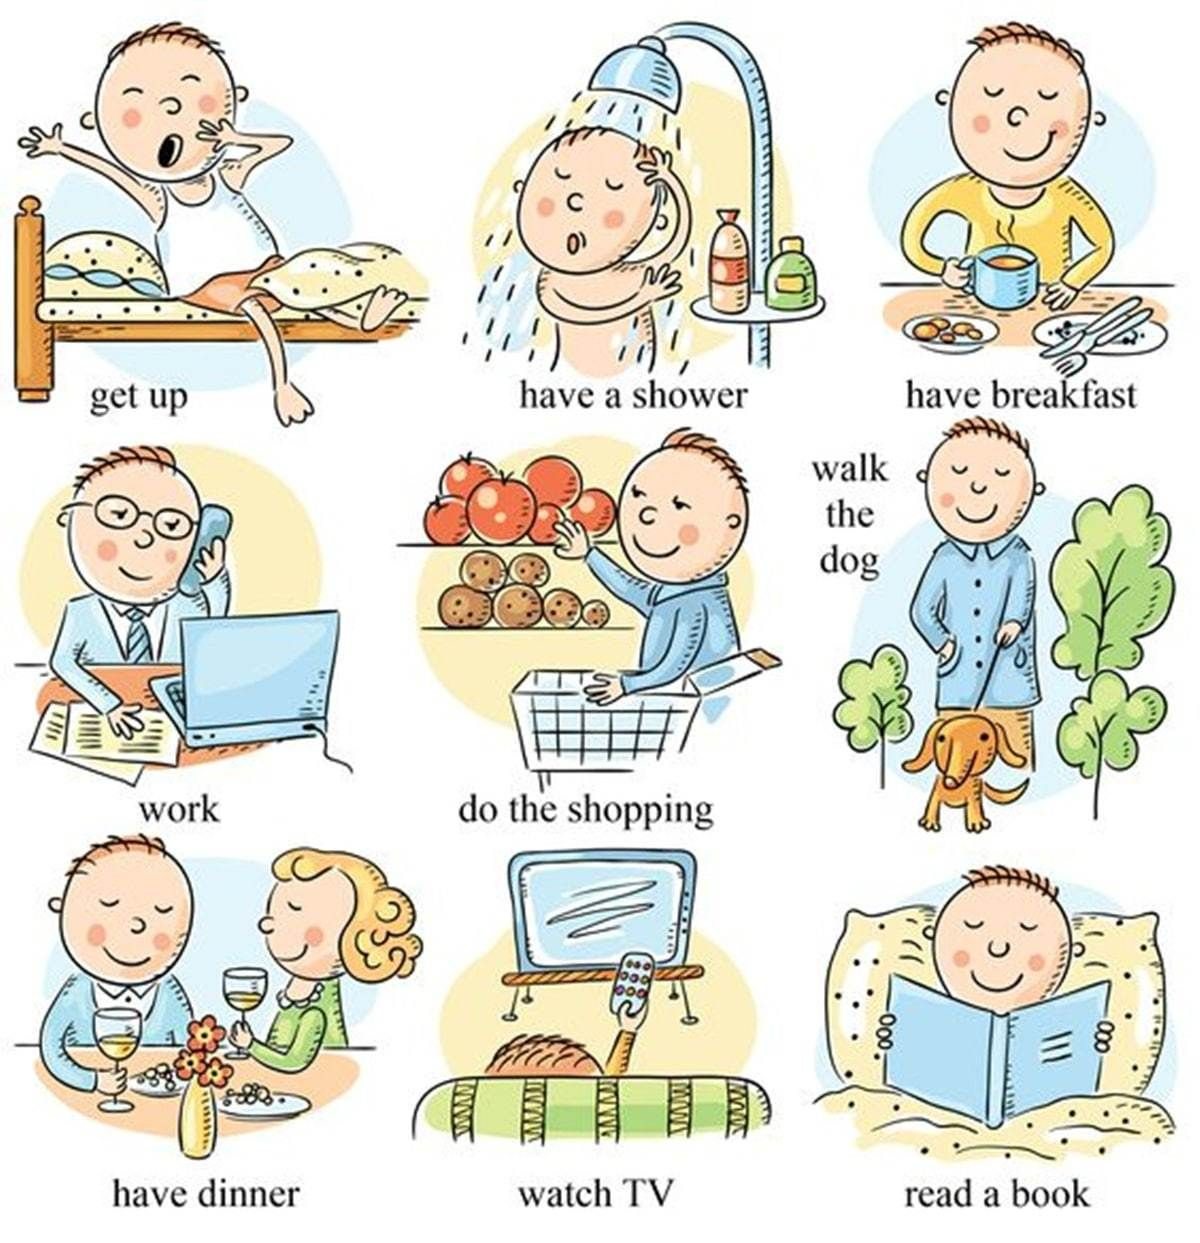 Useful English Phrases To Describe Your Daily Routines